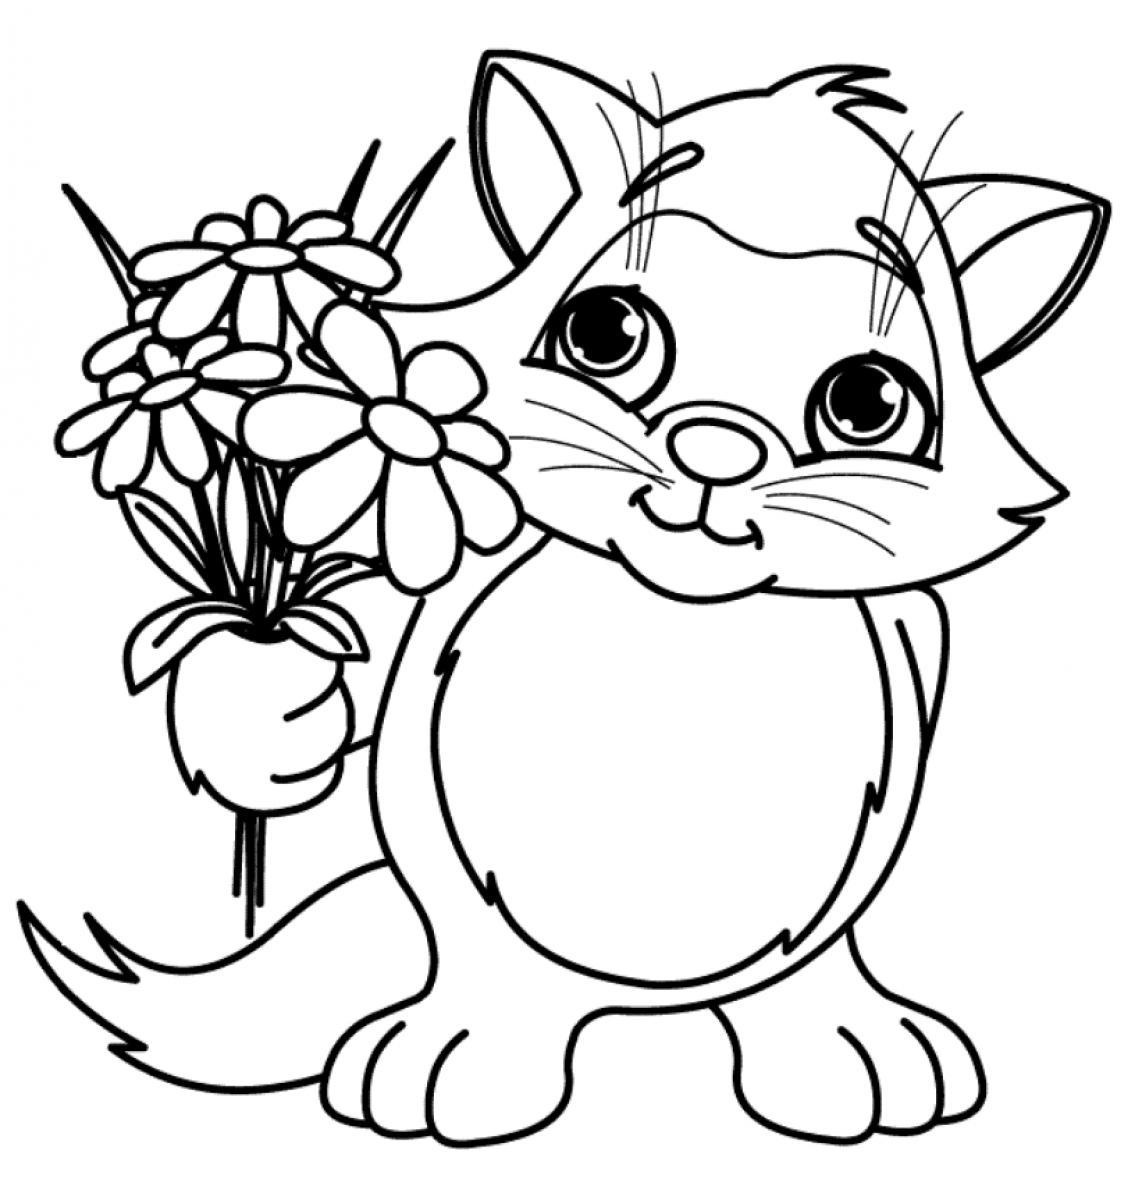 1135x1200 Spring Coloring Pages Free Printable Orango For Free